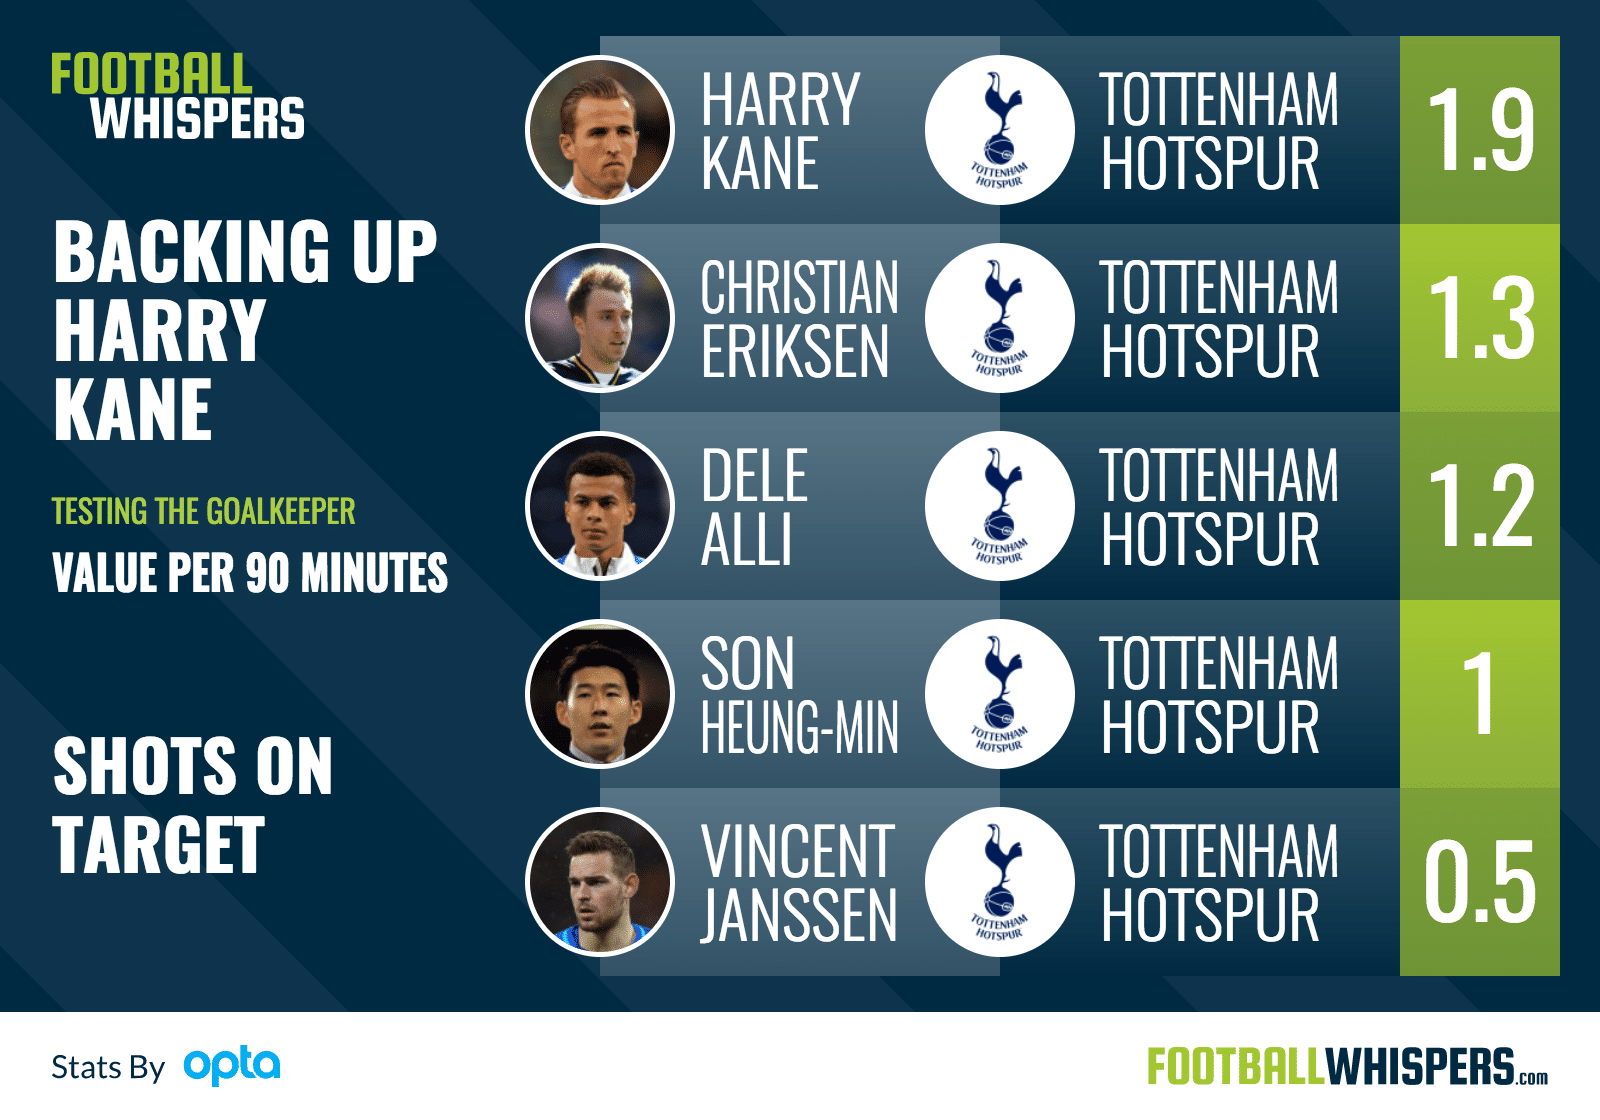 Ranking Spurs players in terms of shots on target